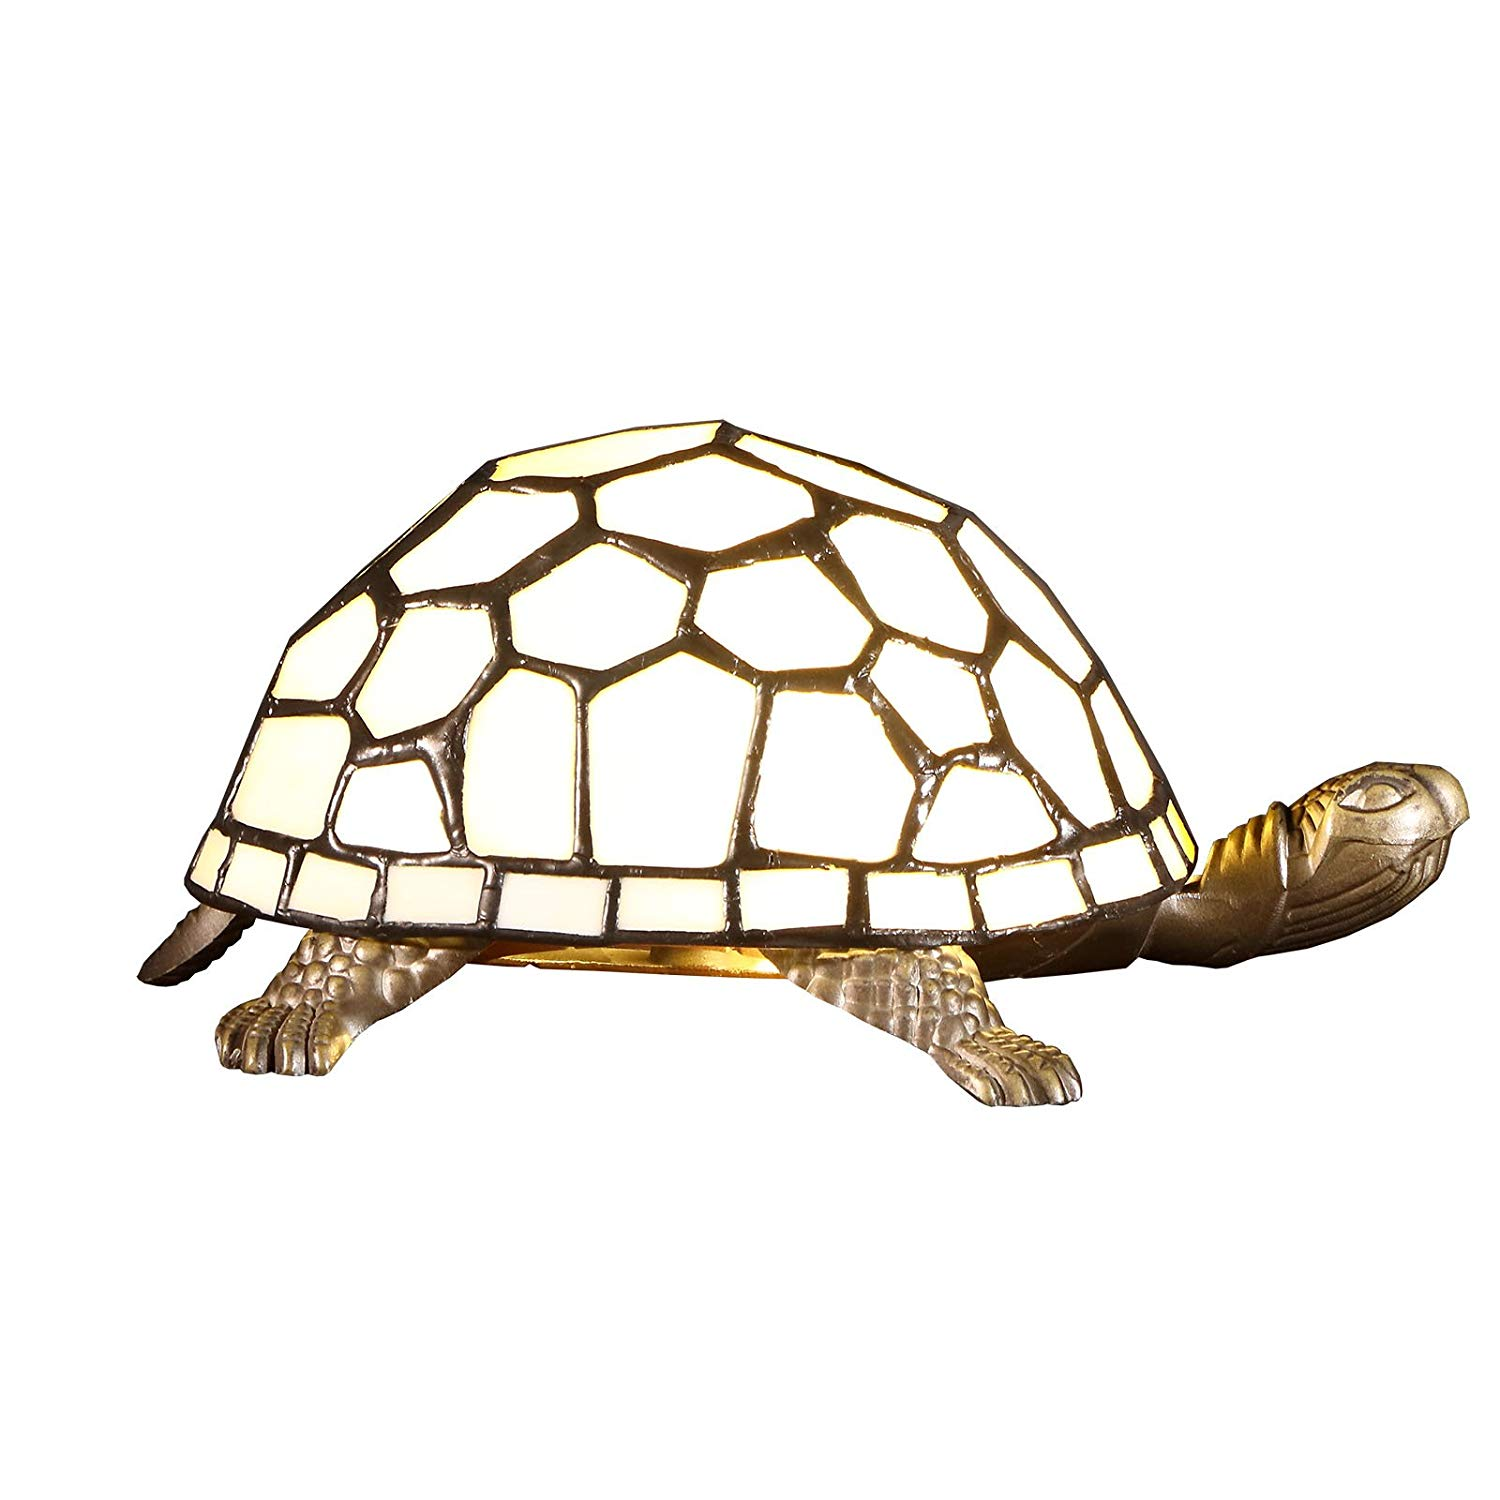 bieye turtle tiffany style stained glass accent table lamp white dark wood coffee and end tables latin percussion instruments bronze tory burch pearl necklace dressers furniture